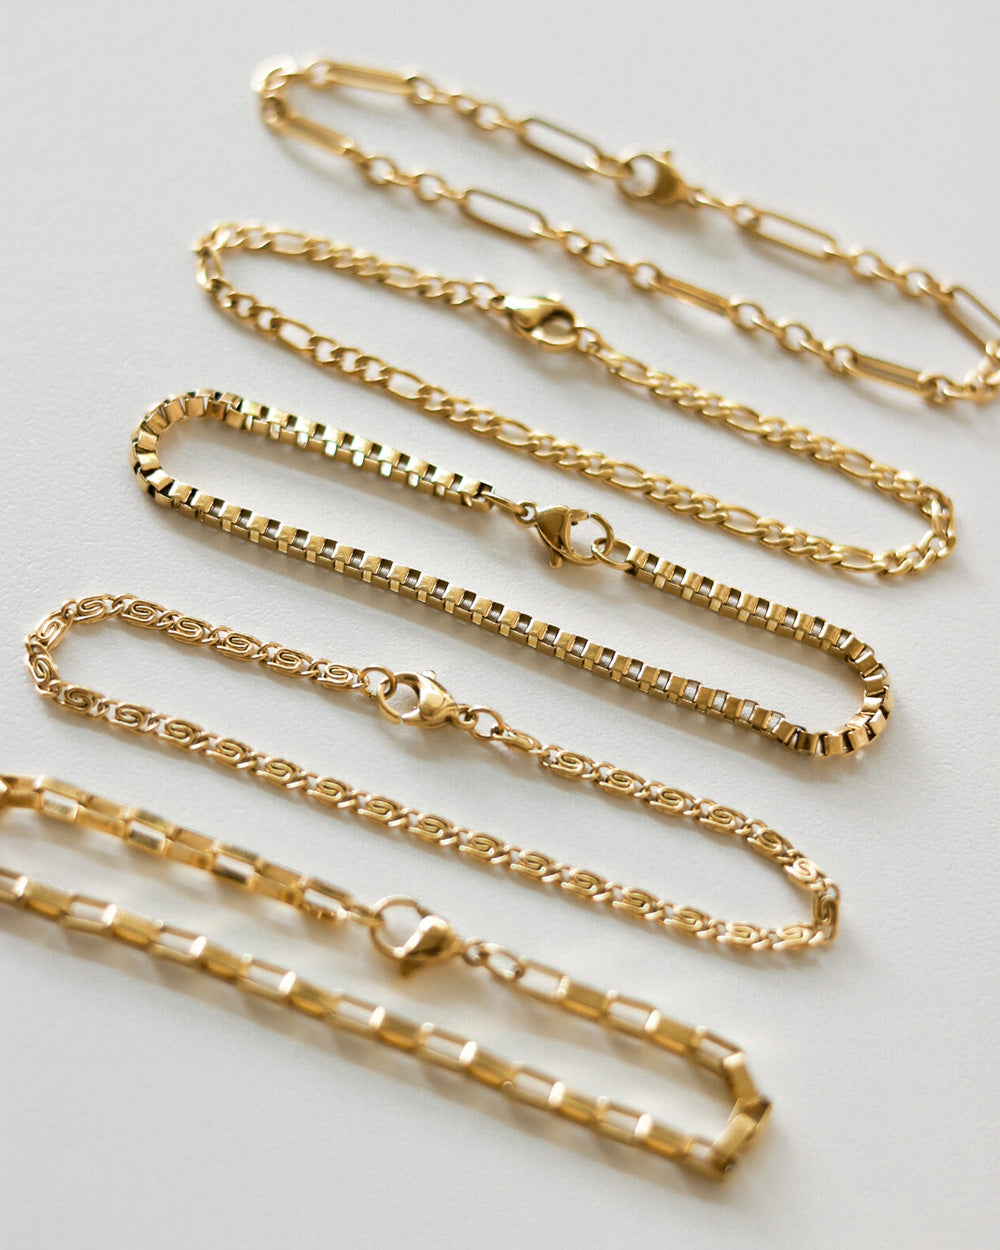 Delicate chain bracelets that are perfect for stacking - The Hexad